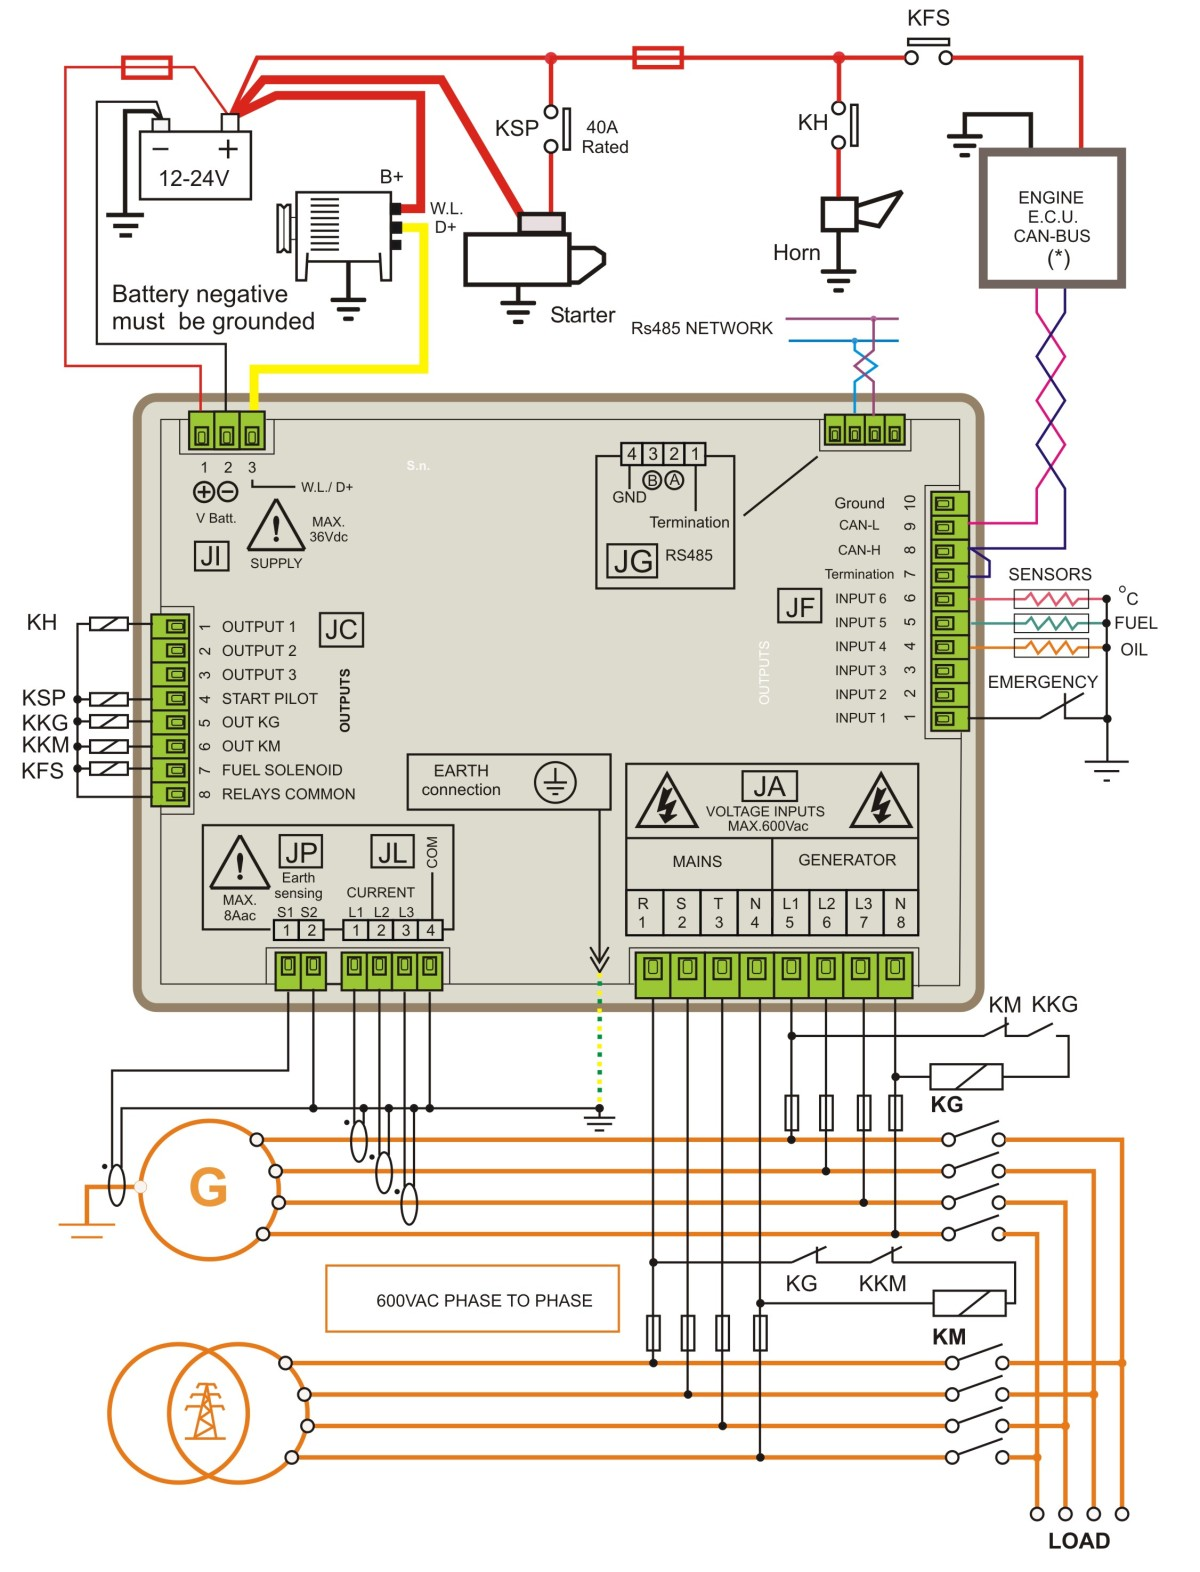 Diesel Generator Control Panel Wiring Diagram BeK3 e1450881313642 wiring diagram generator readingrat net newage stamford generator wiring diagram at cos-gaming.co